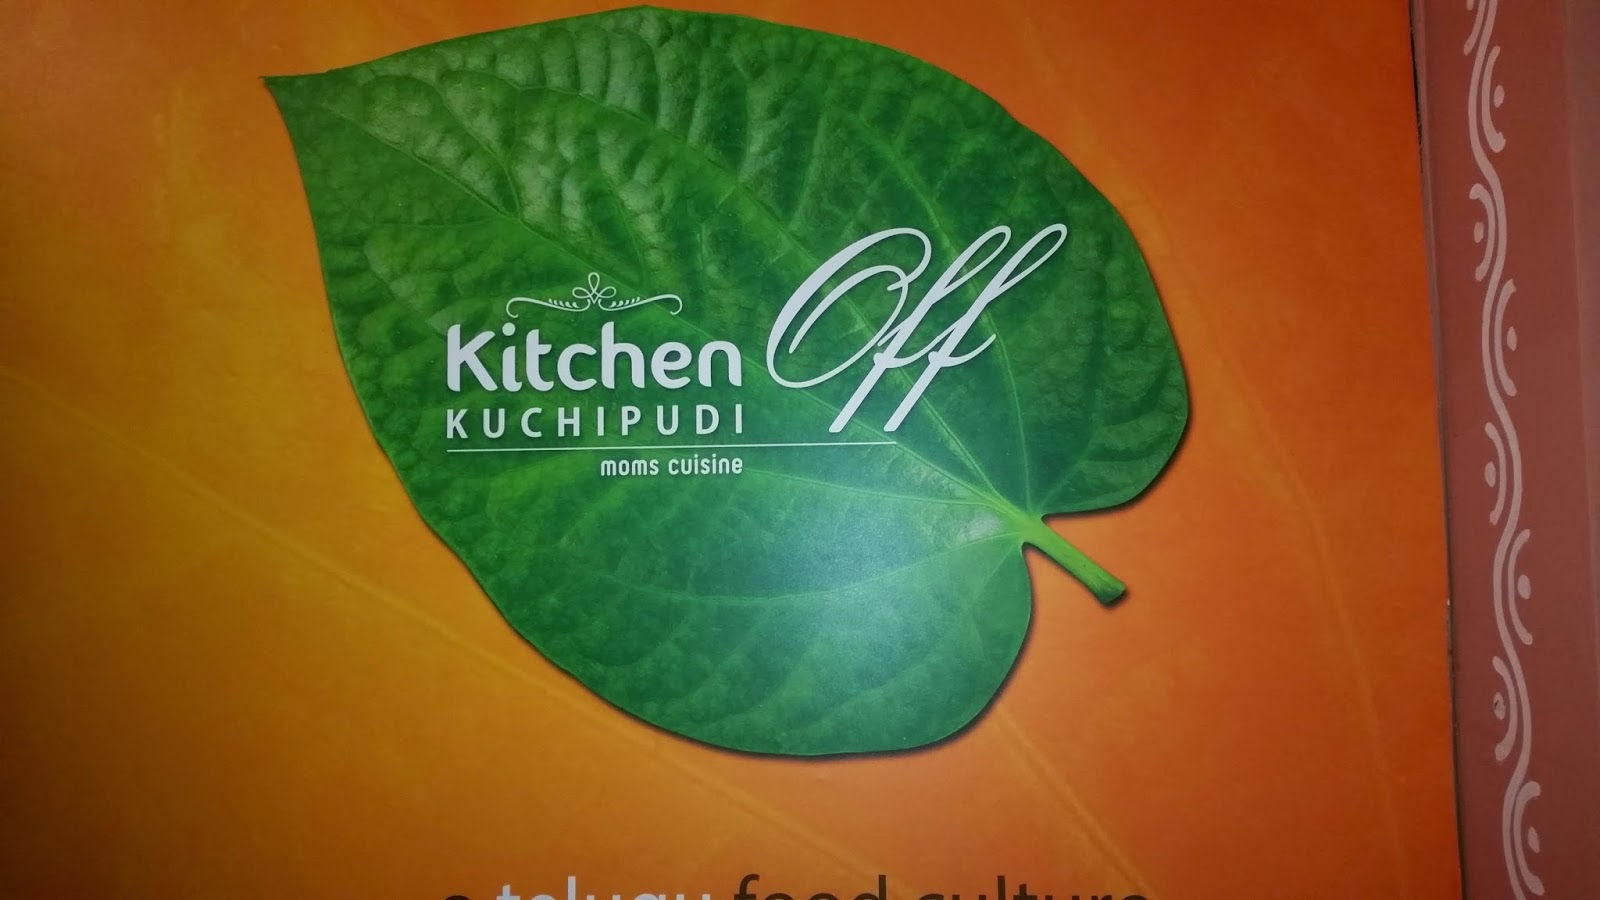 Kitchen Off Kuchipudi